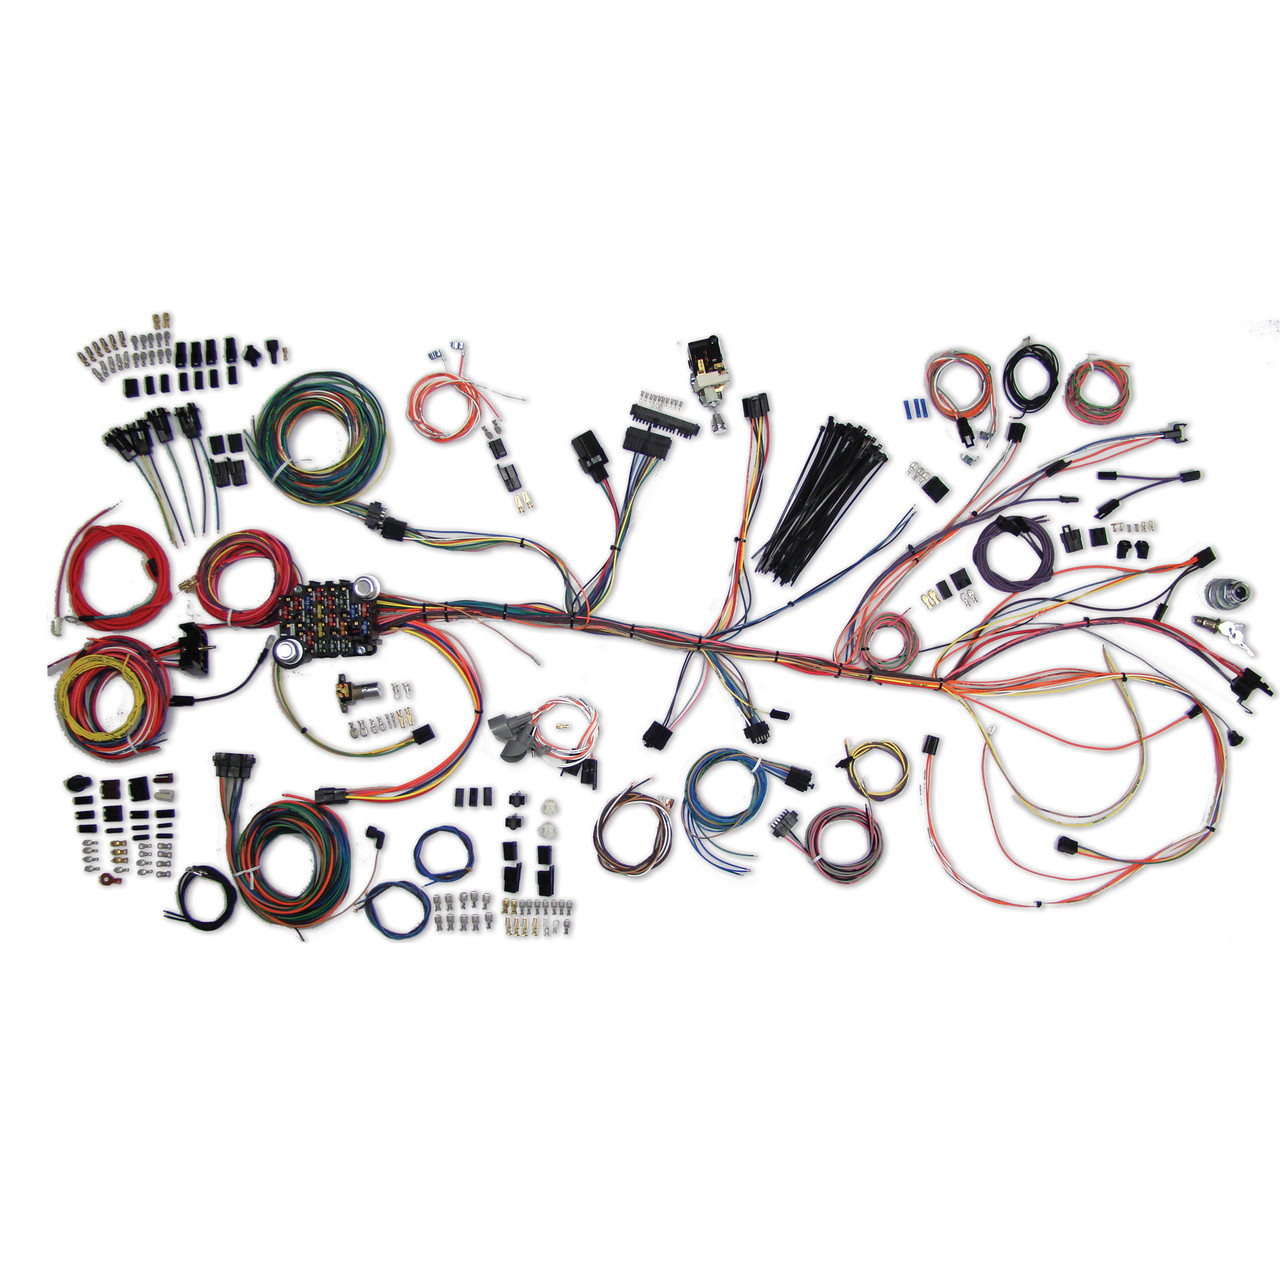 hight resolution of american autowire 1964 1967 chevrolet chevelle el camino classic aftermarket wiring kits american autowire toggle turn signal switch